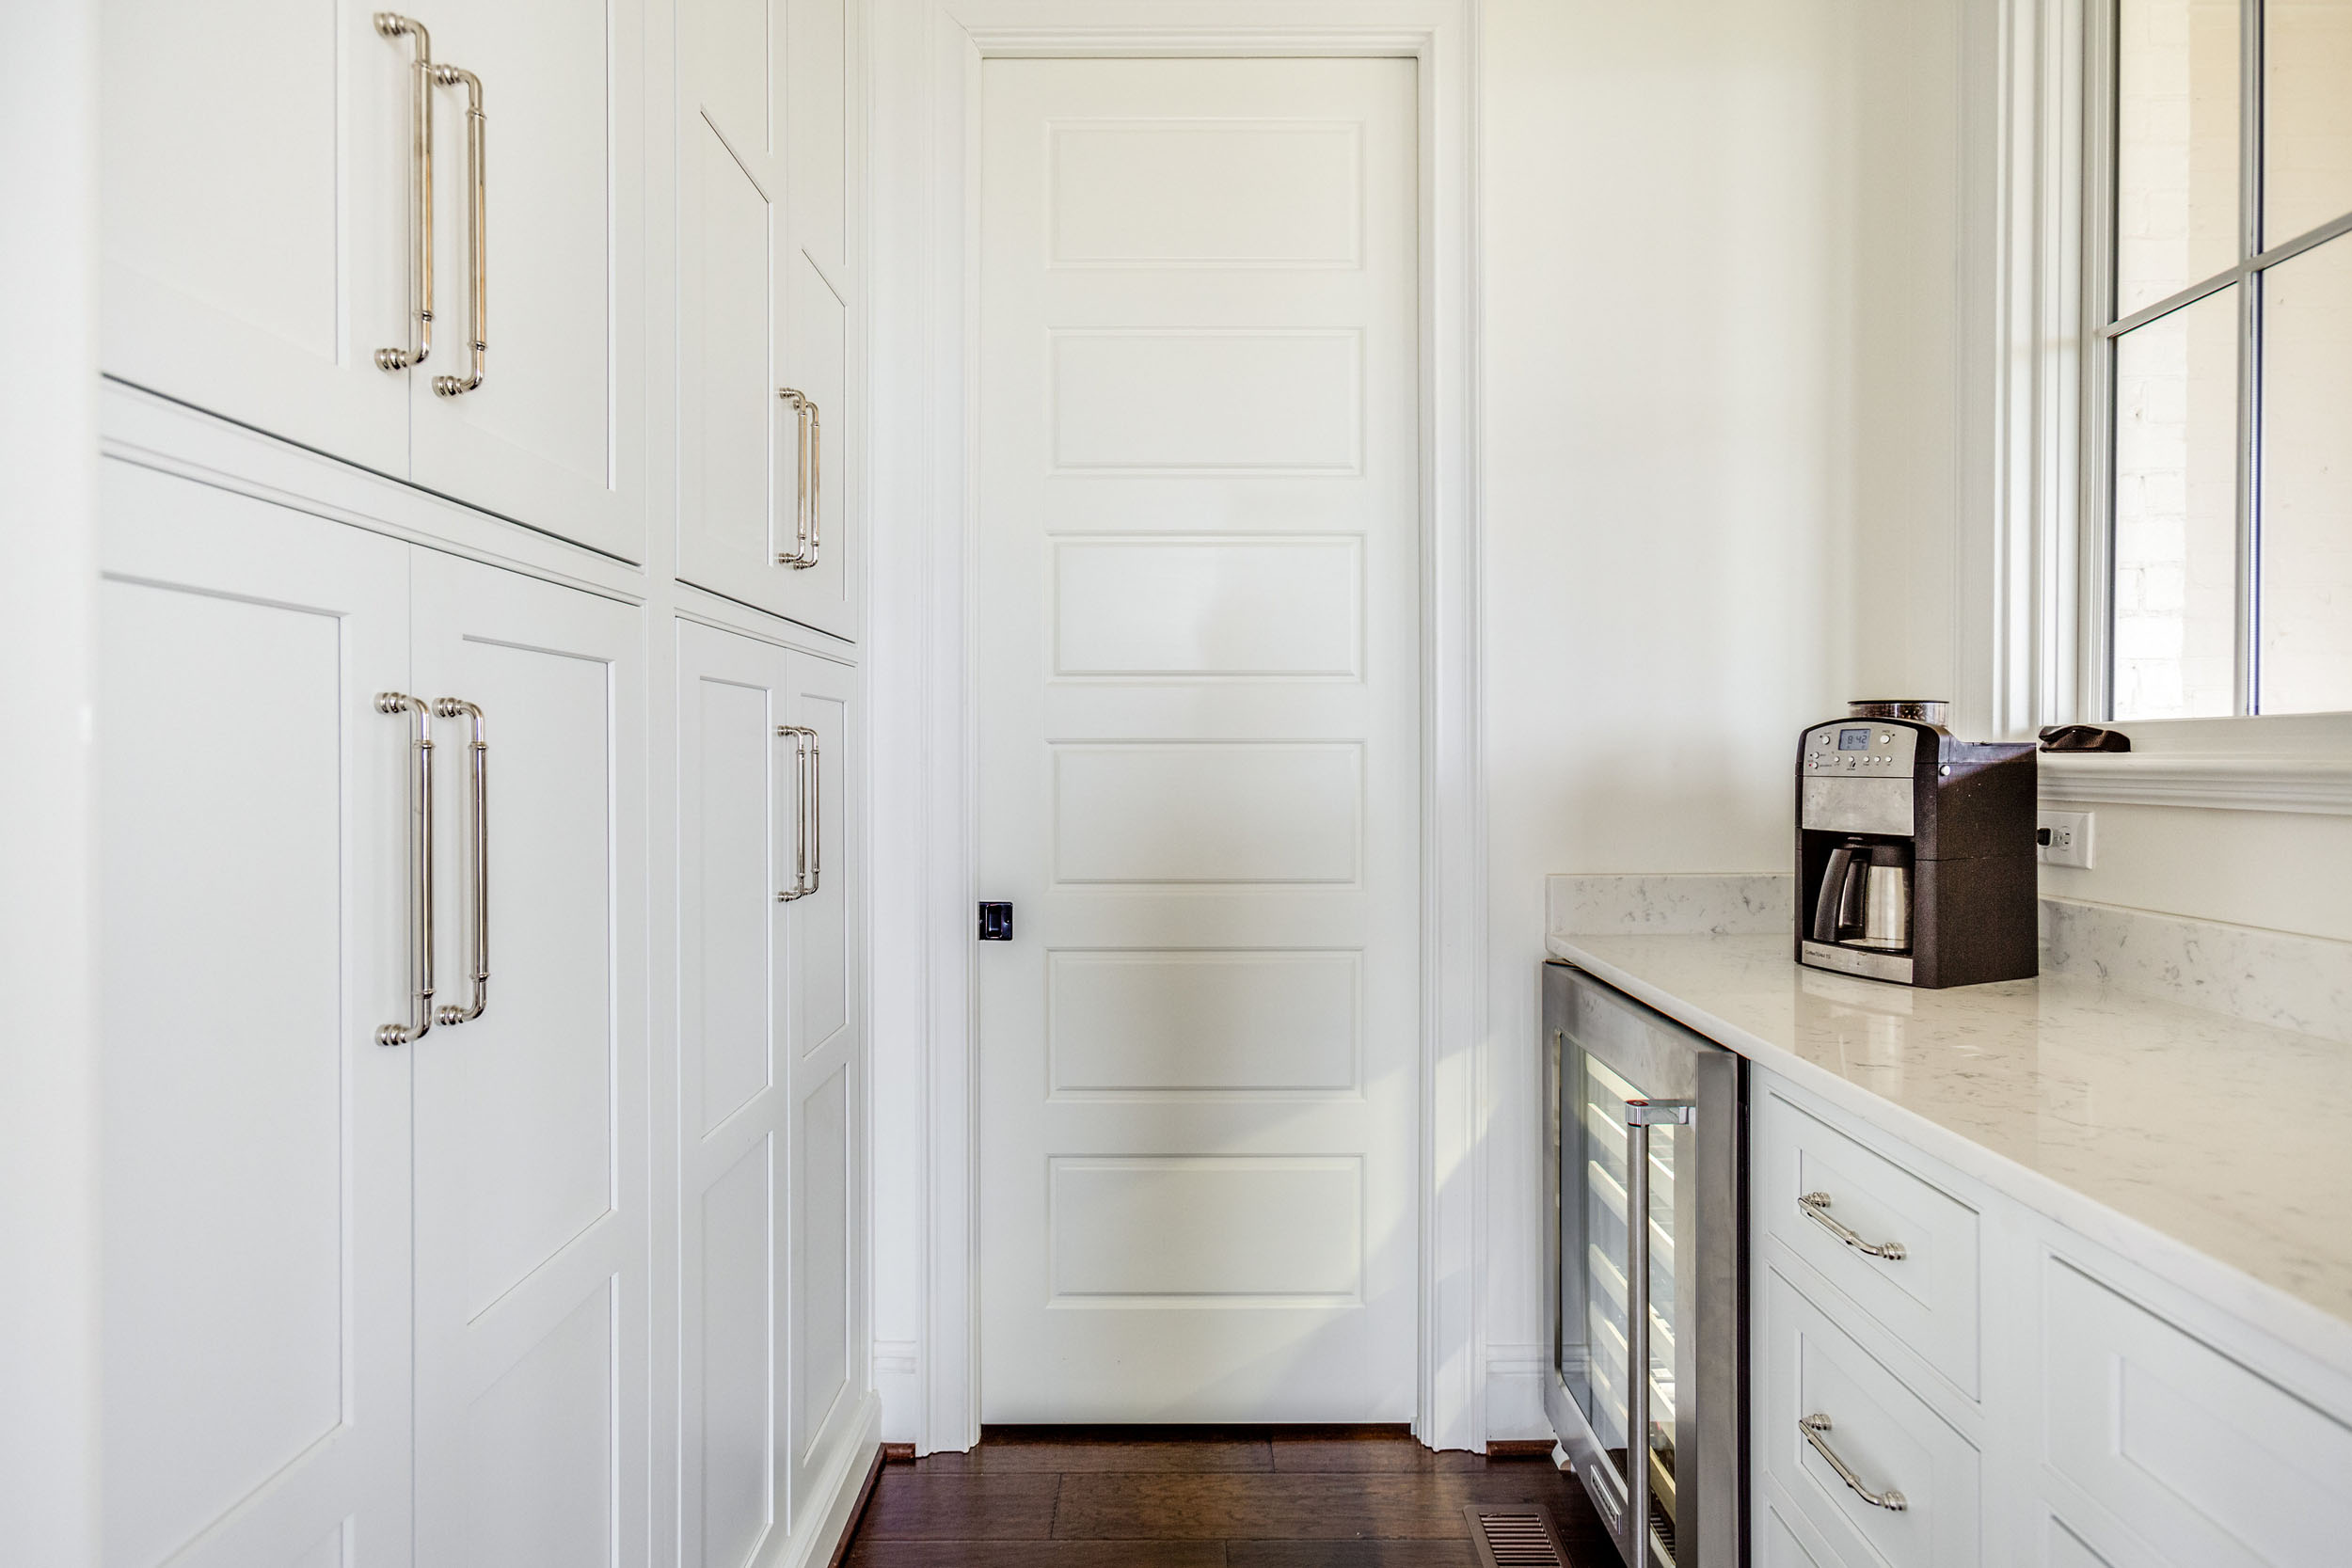 Floor to ceiling Cabinets in the Pantry